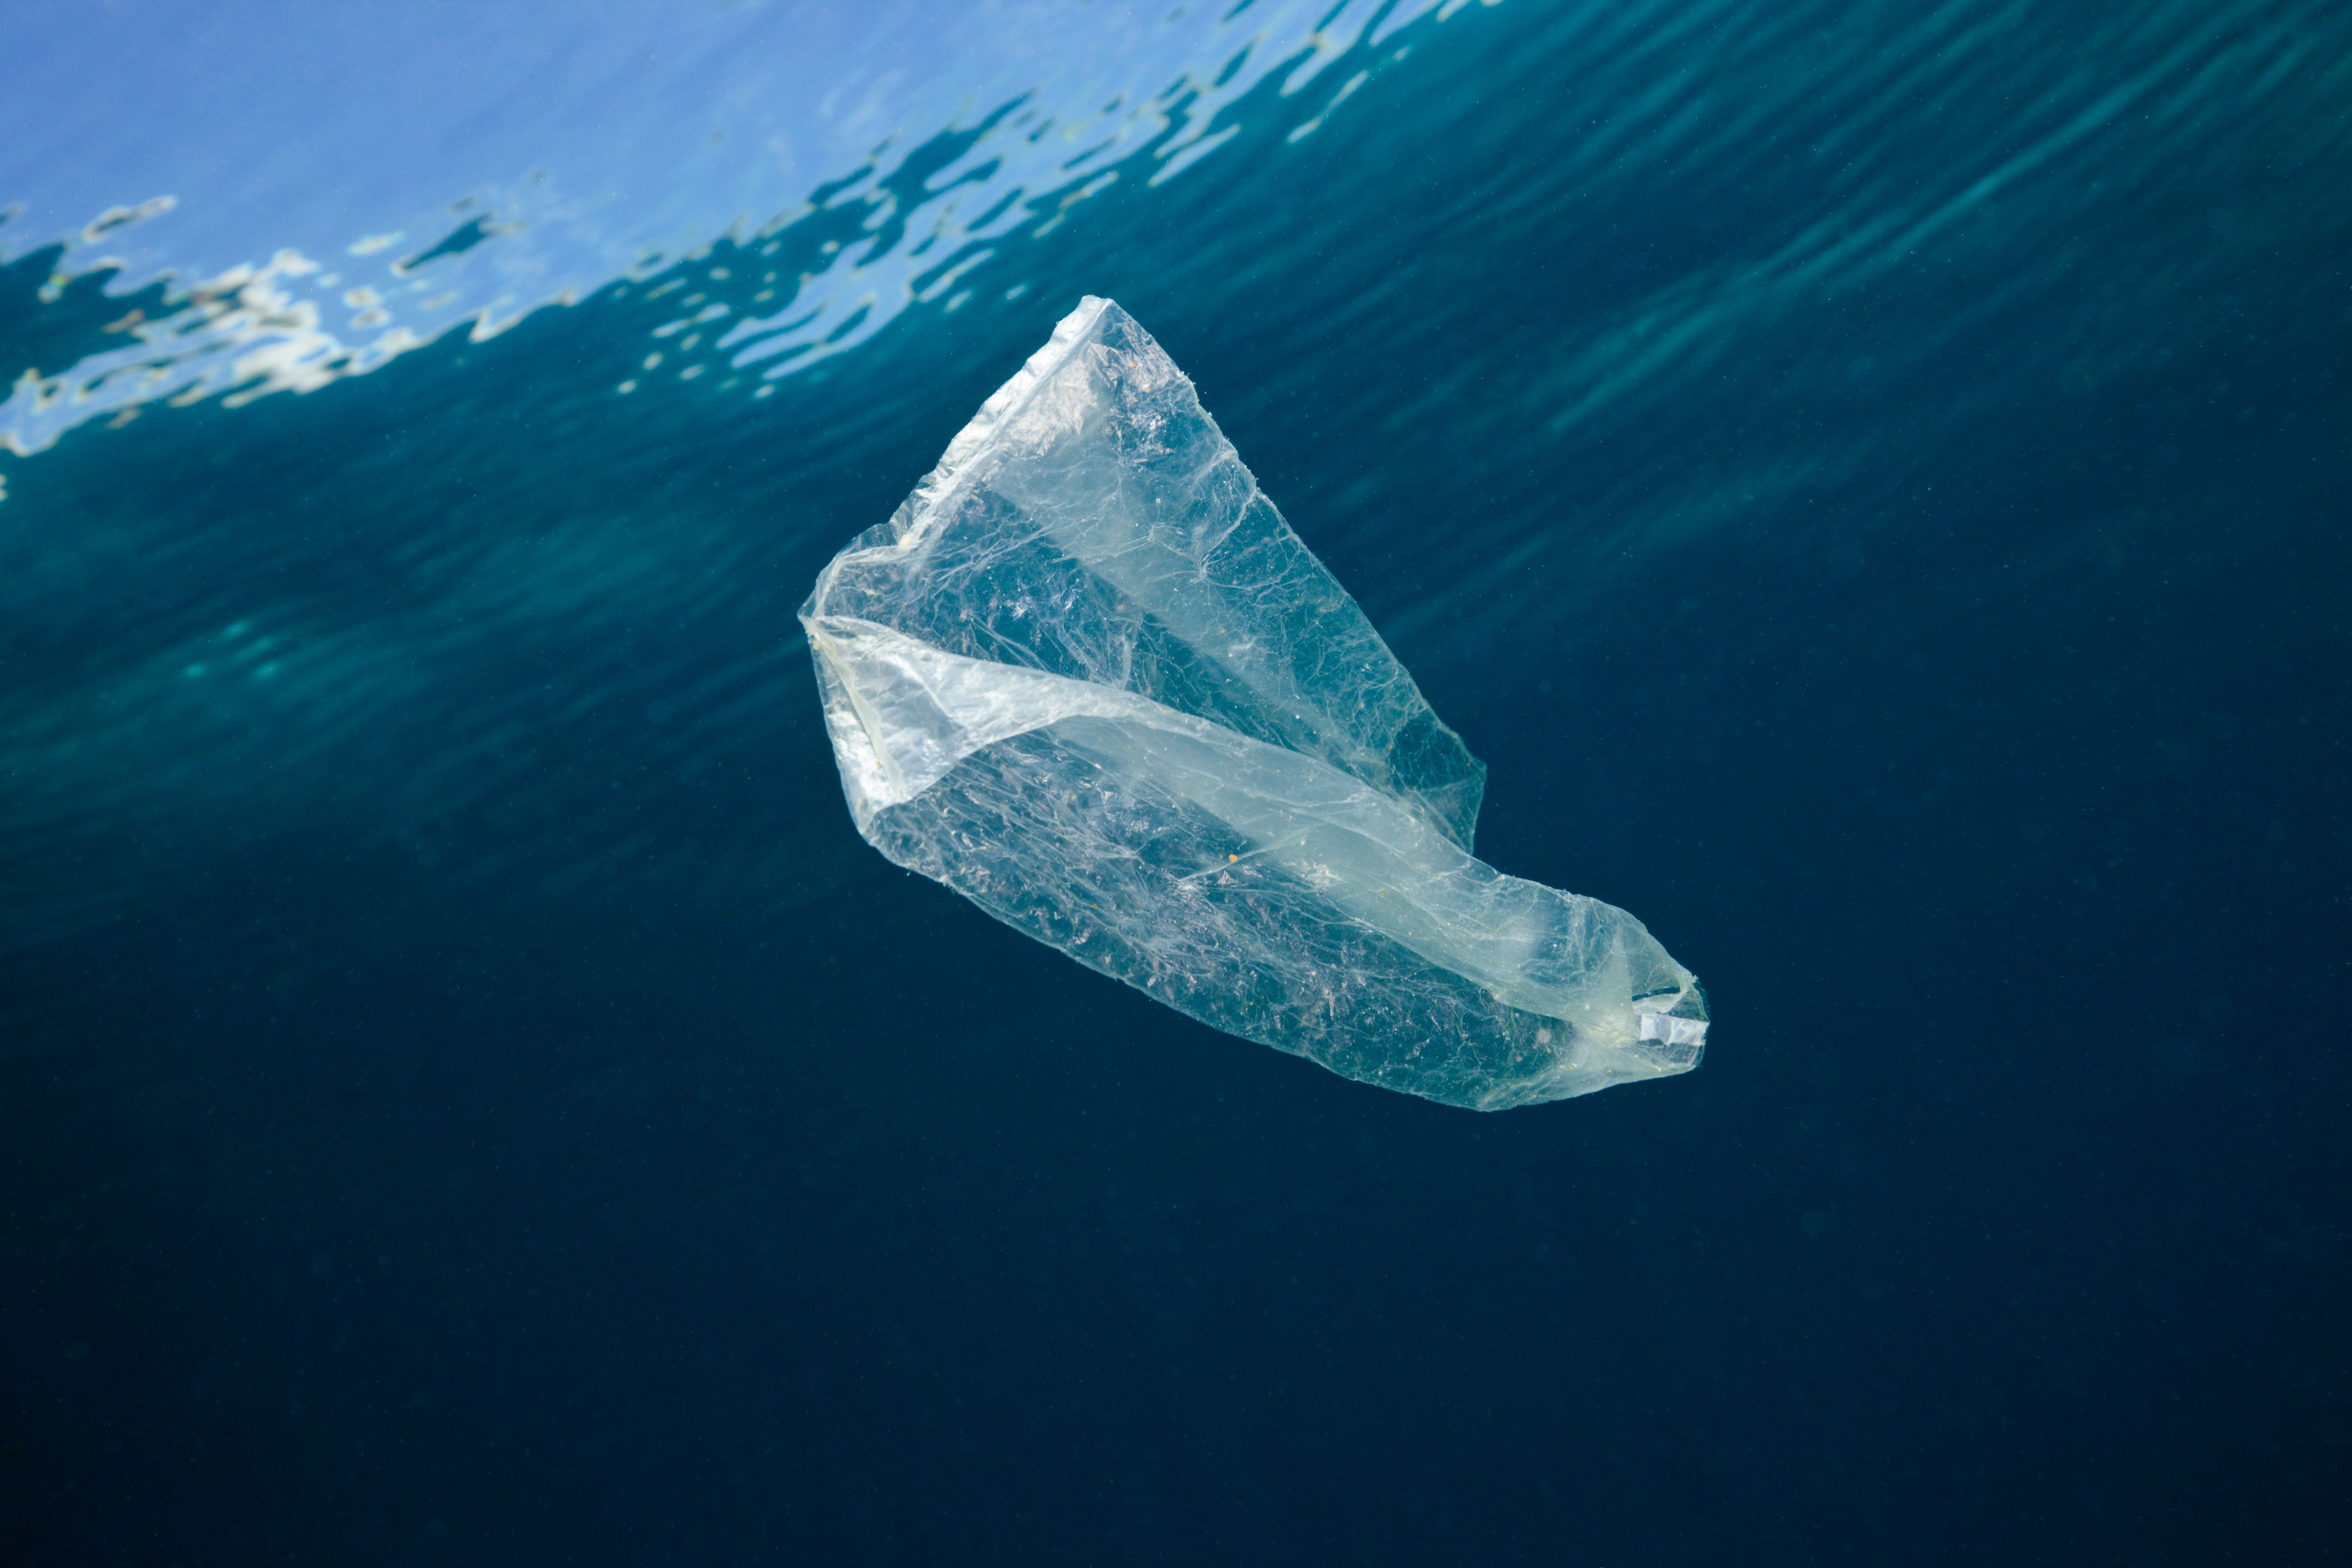 Ocean Plastic Pollution Isn't Just Immoral, It's